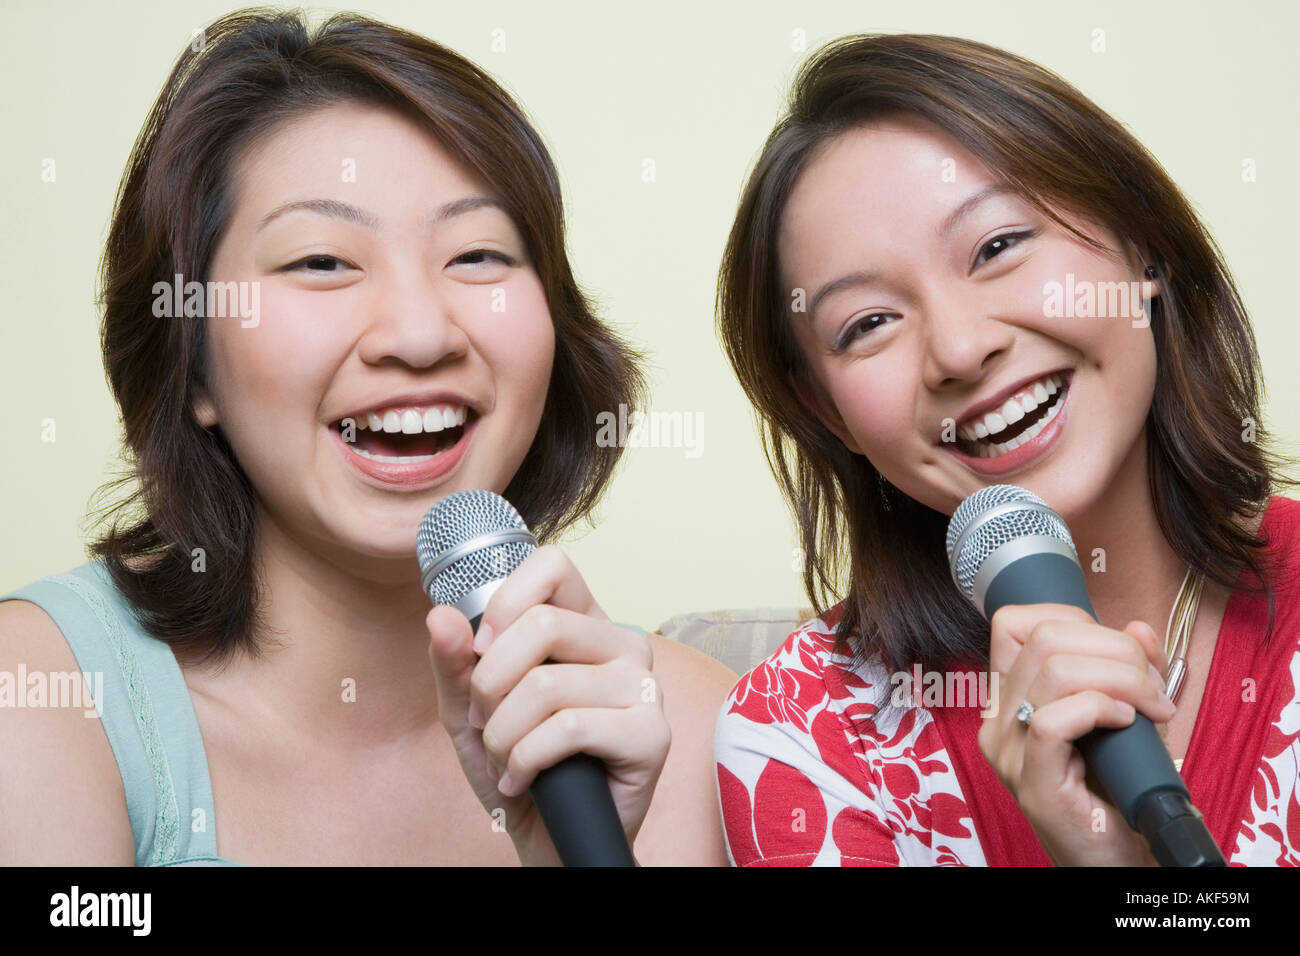 Portrait of two young women singing together into microphones - Stock Image